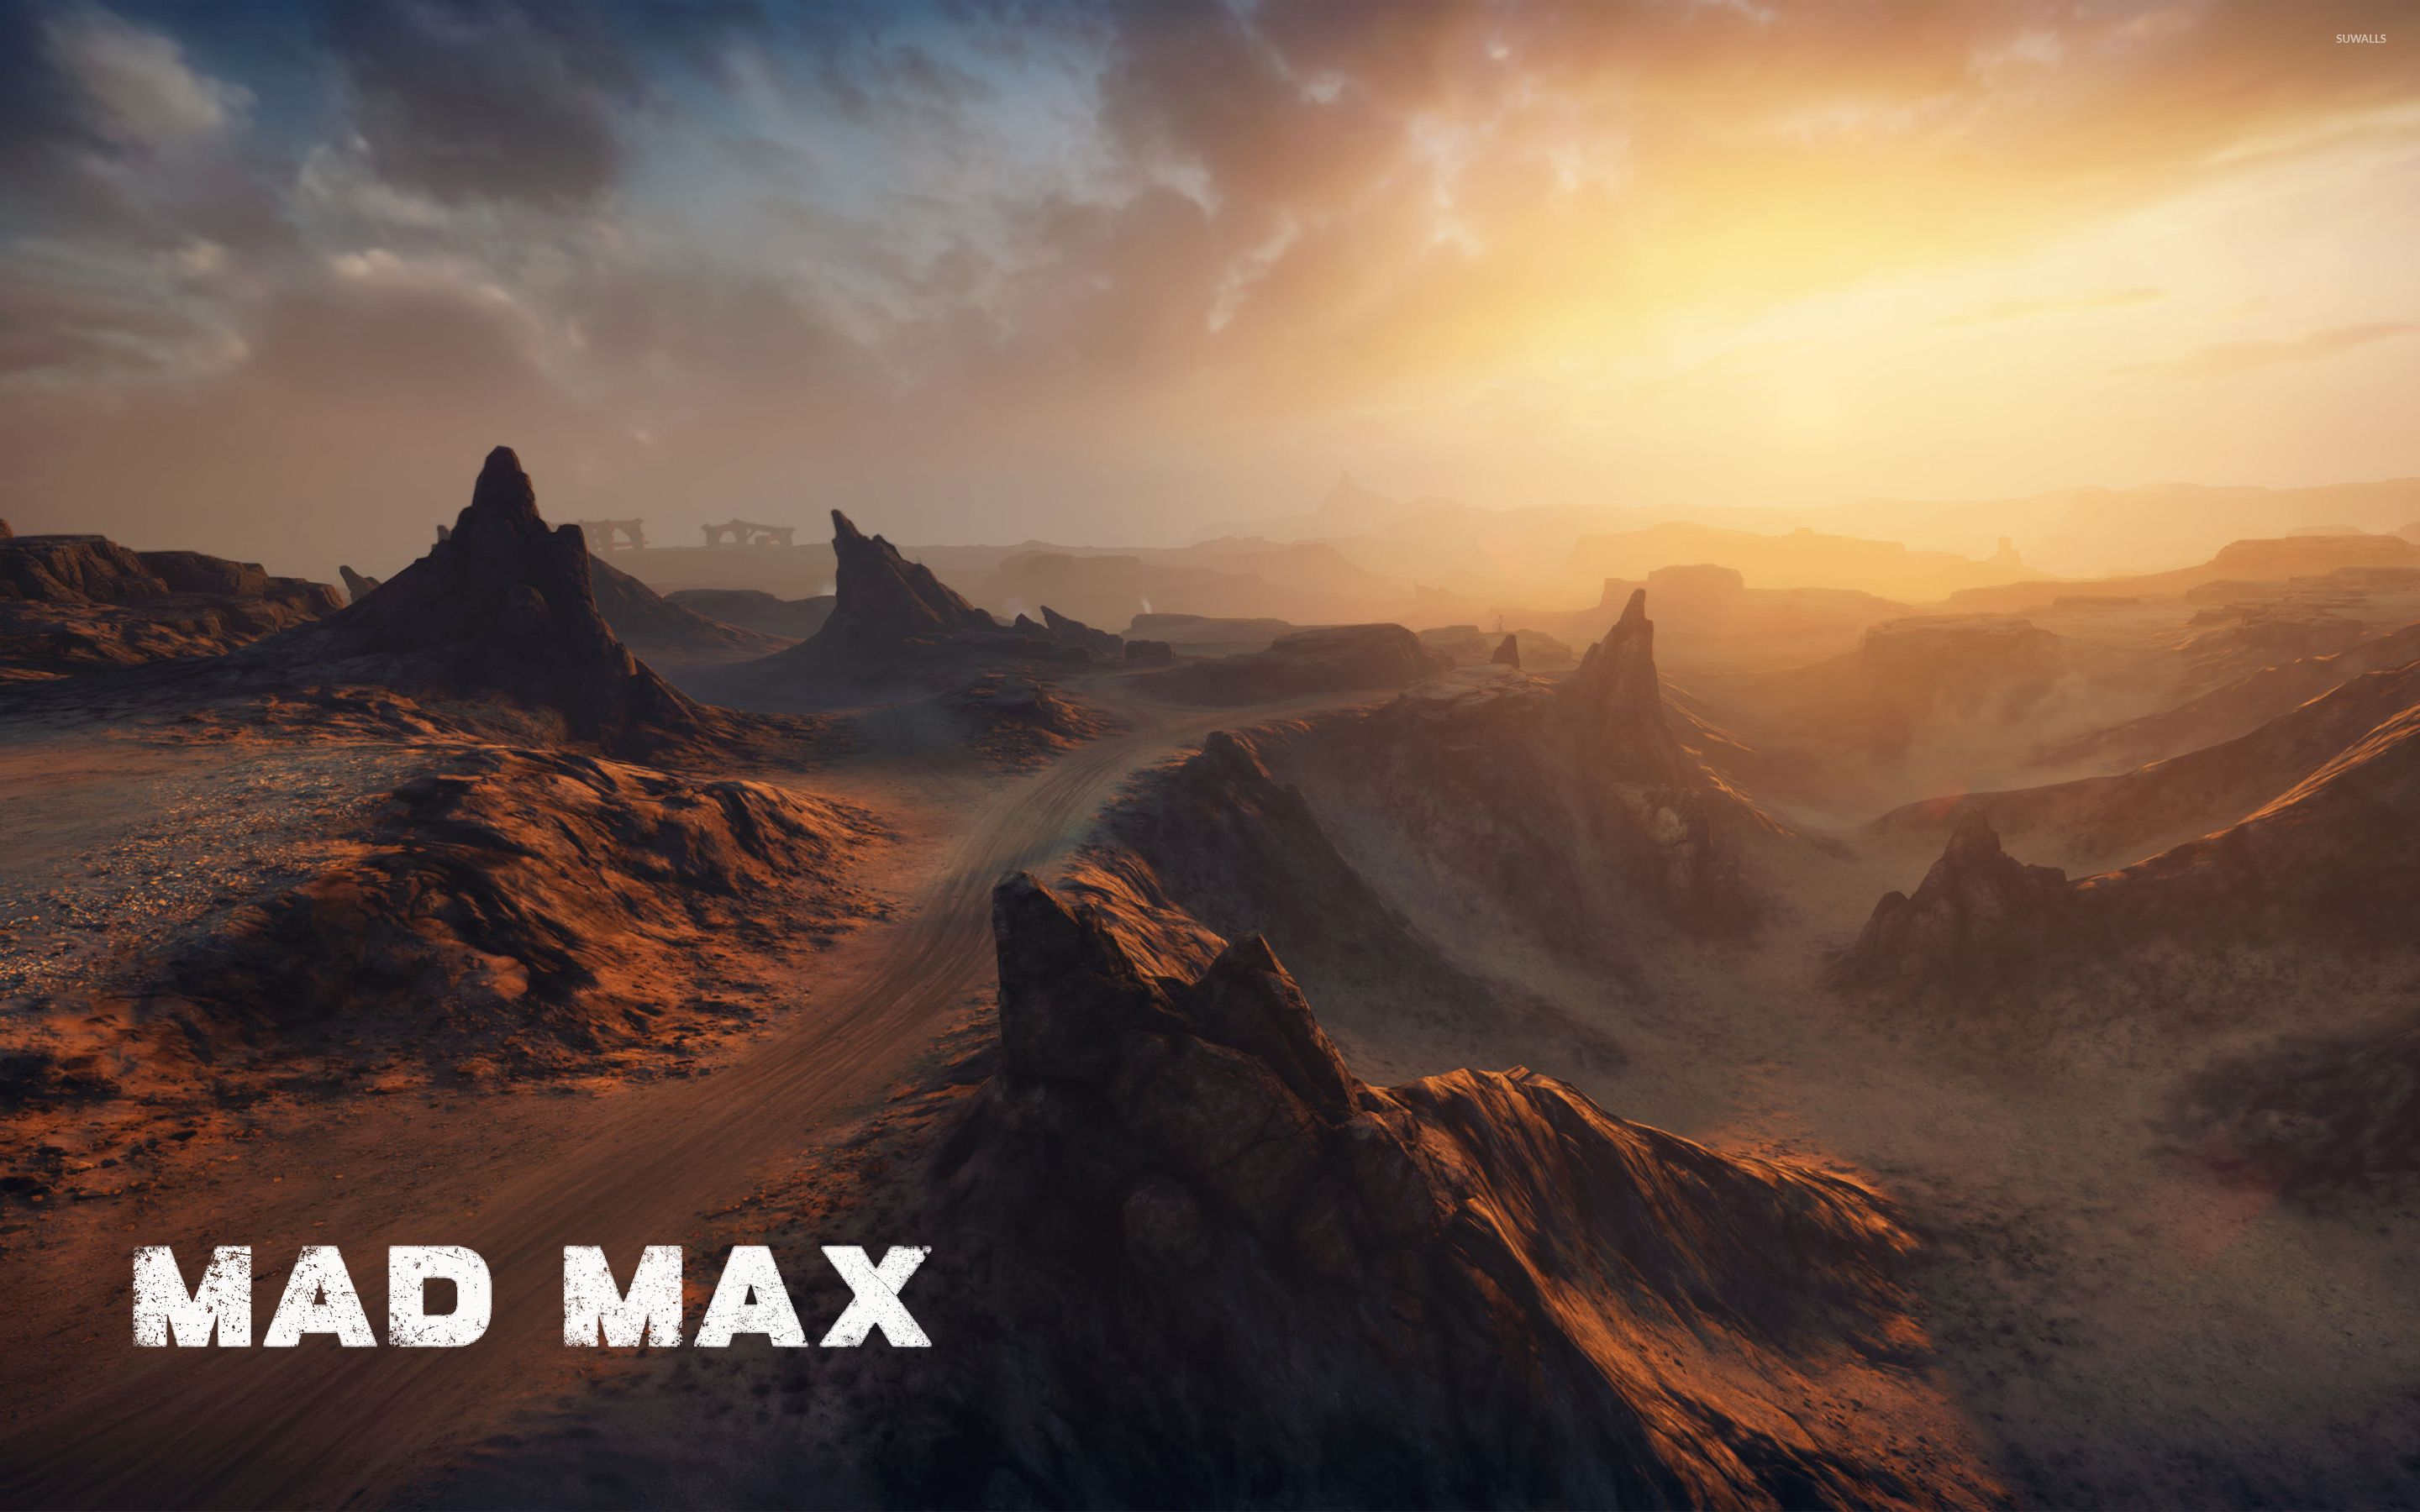 mad max games hd k wallpapers hd wallpapers pinterest mad